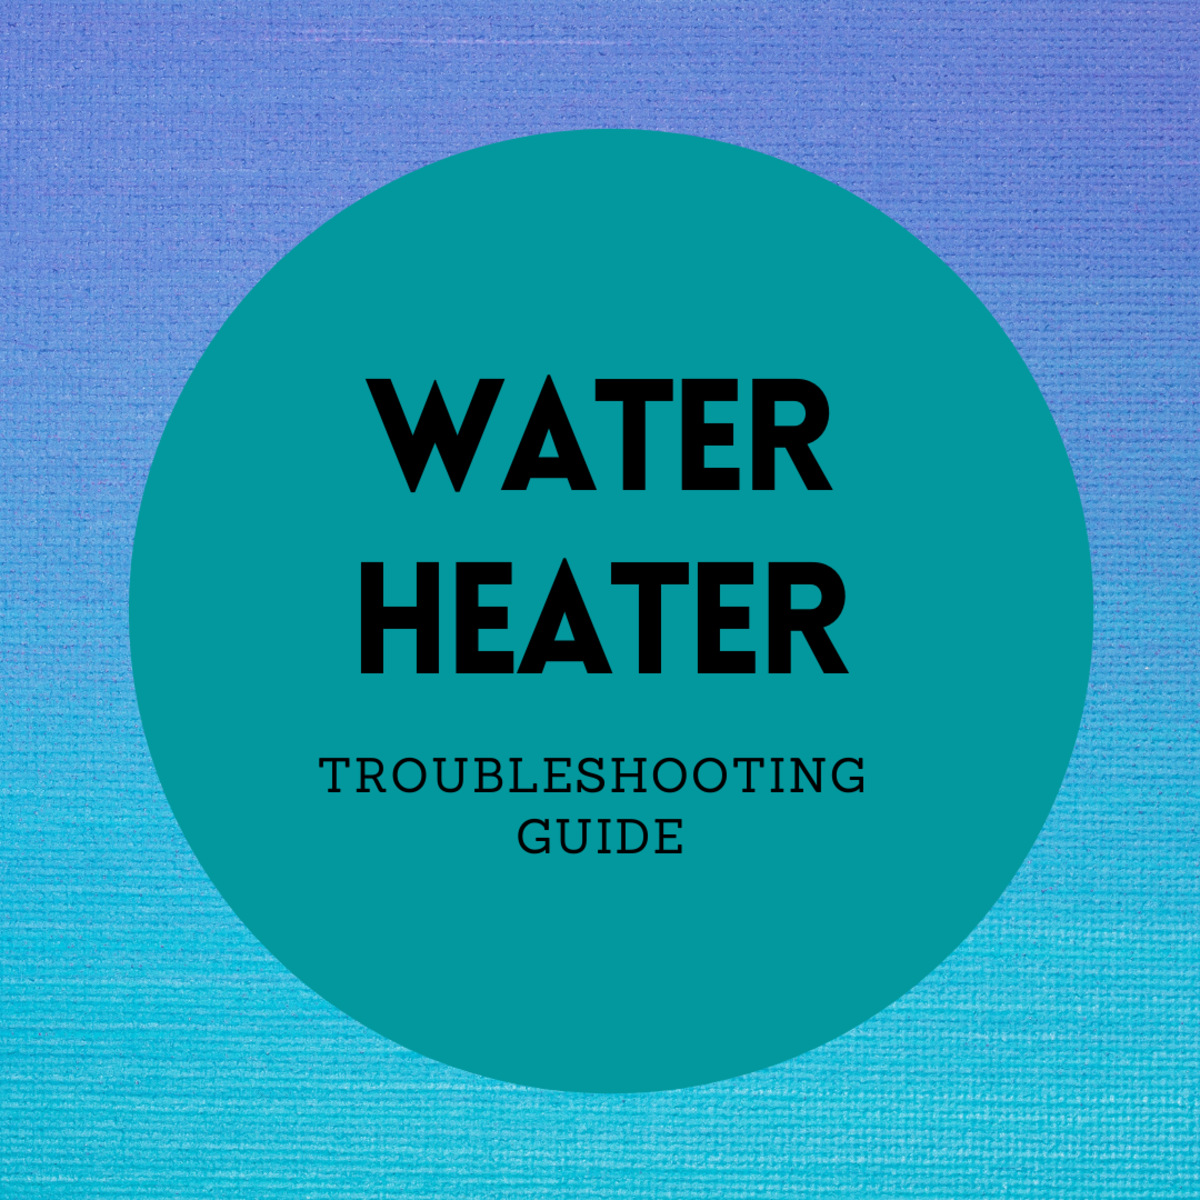 Learn how to troubleshoot and replace thermostats and heating elements.